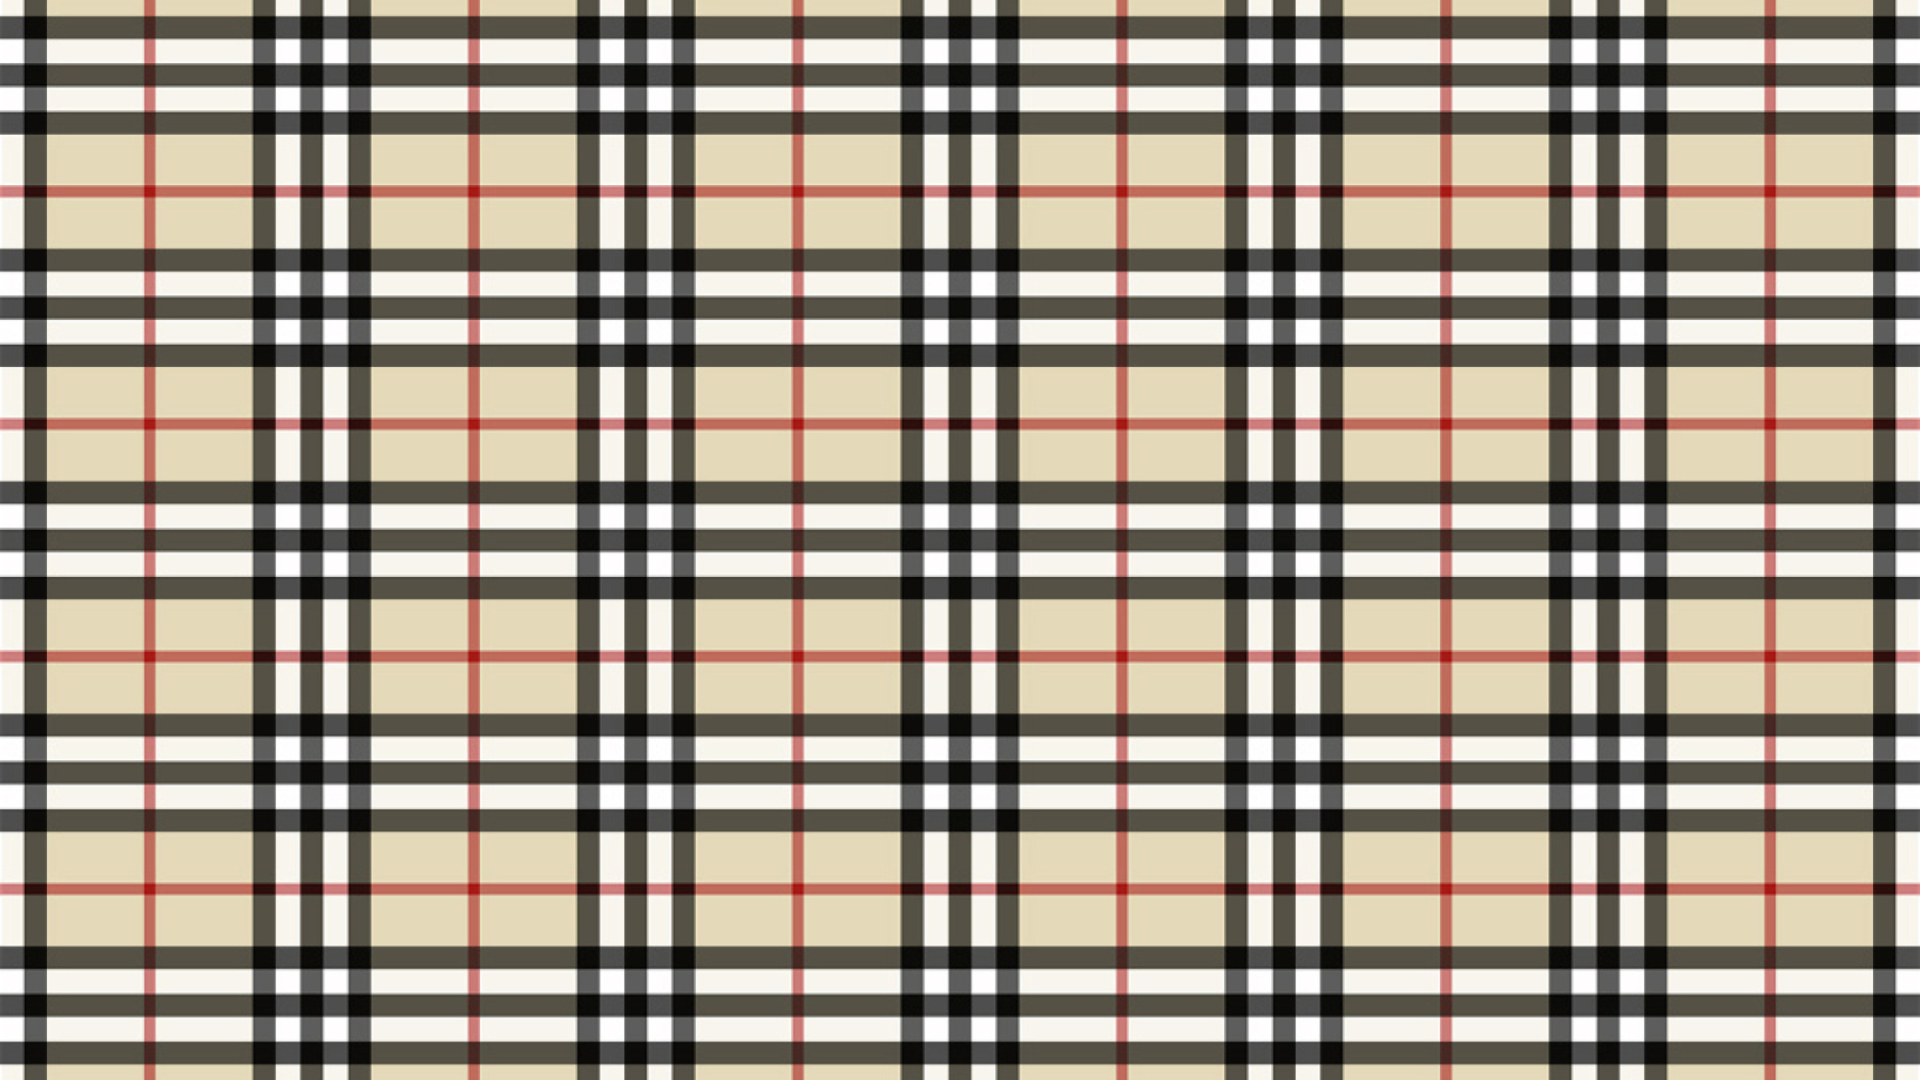 Burberry Stripes Wallpaper for 1920x1080